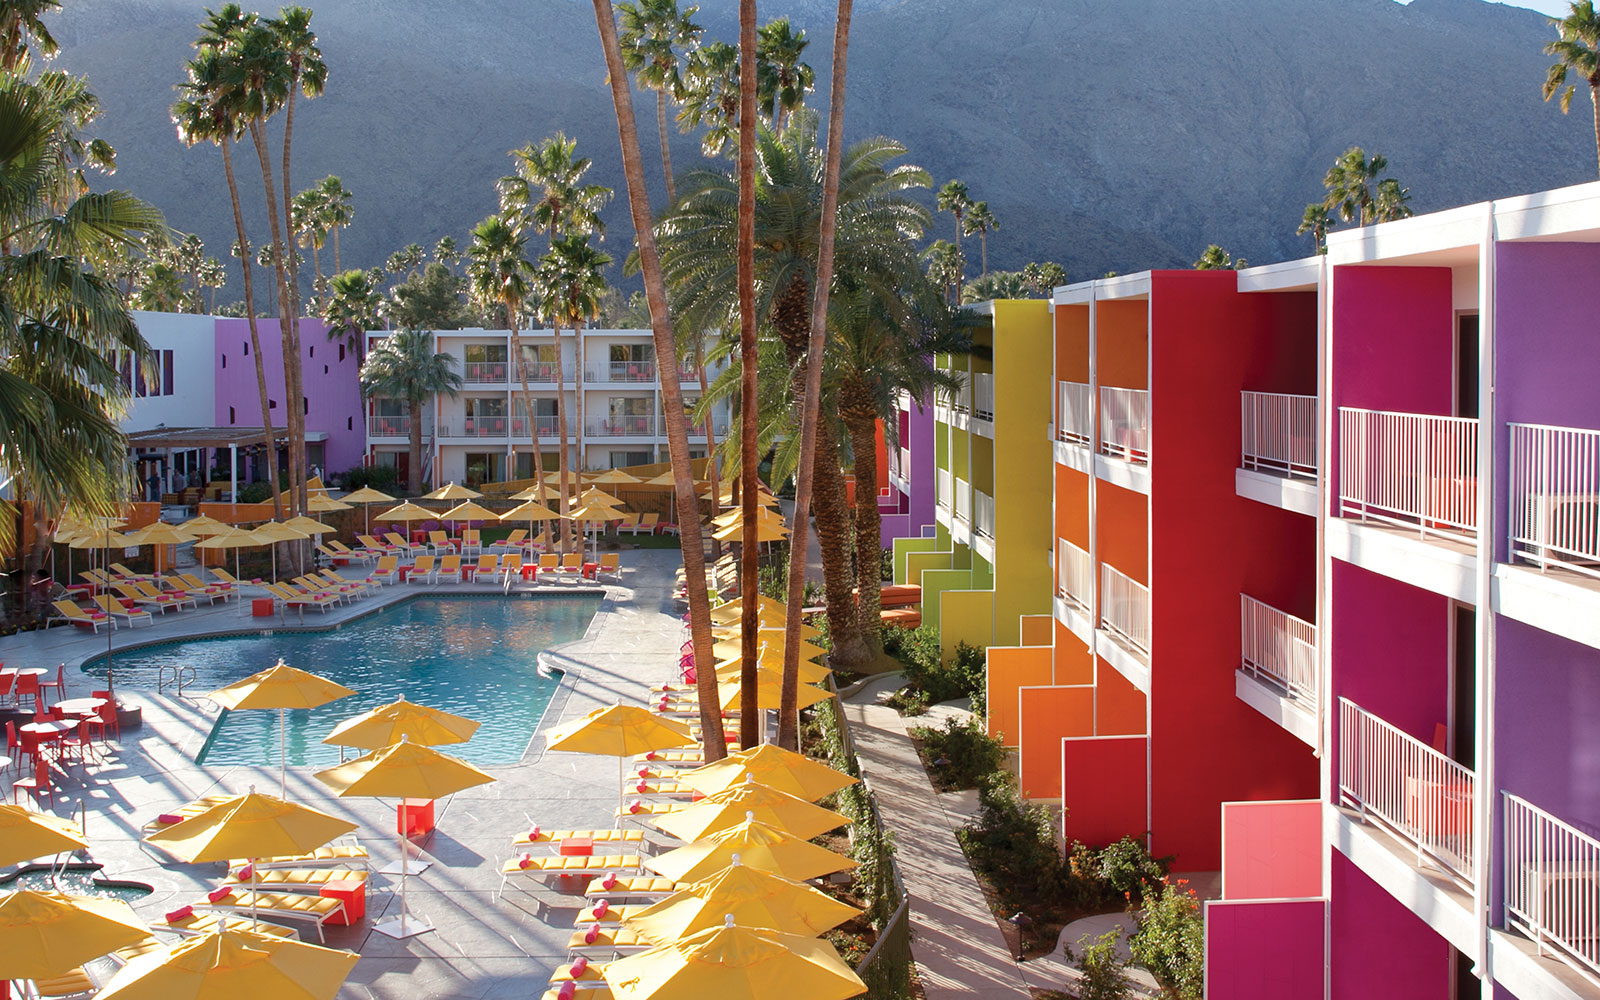 Nine Perfect Places For Your LGBT Destination Wedding: Palm Springs, California